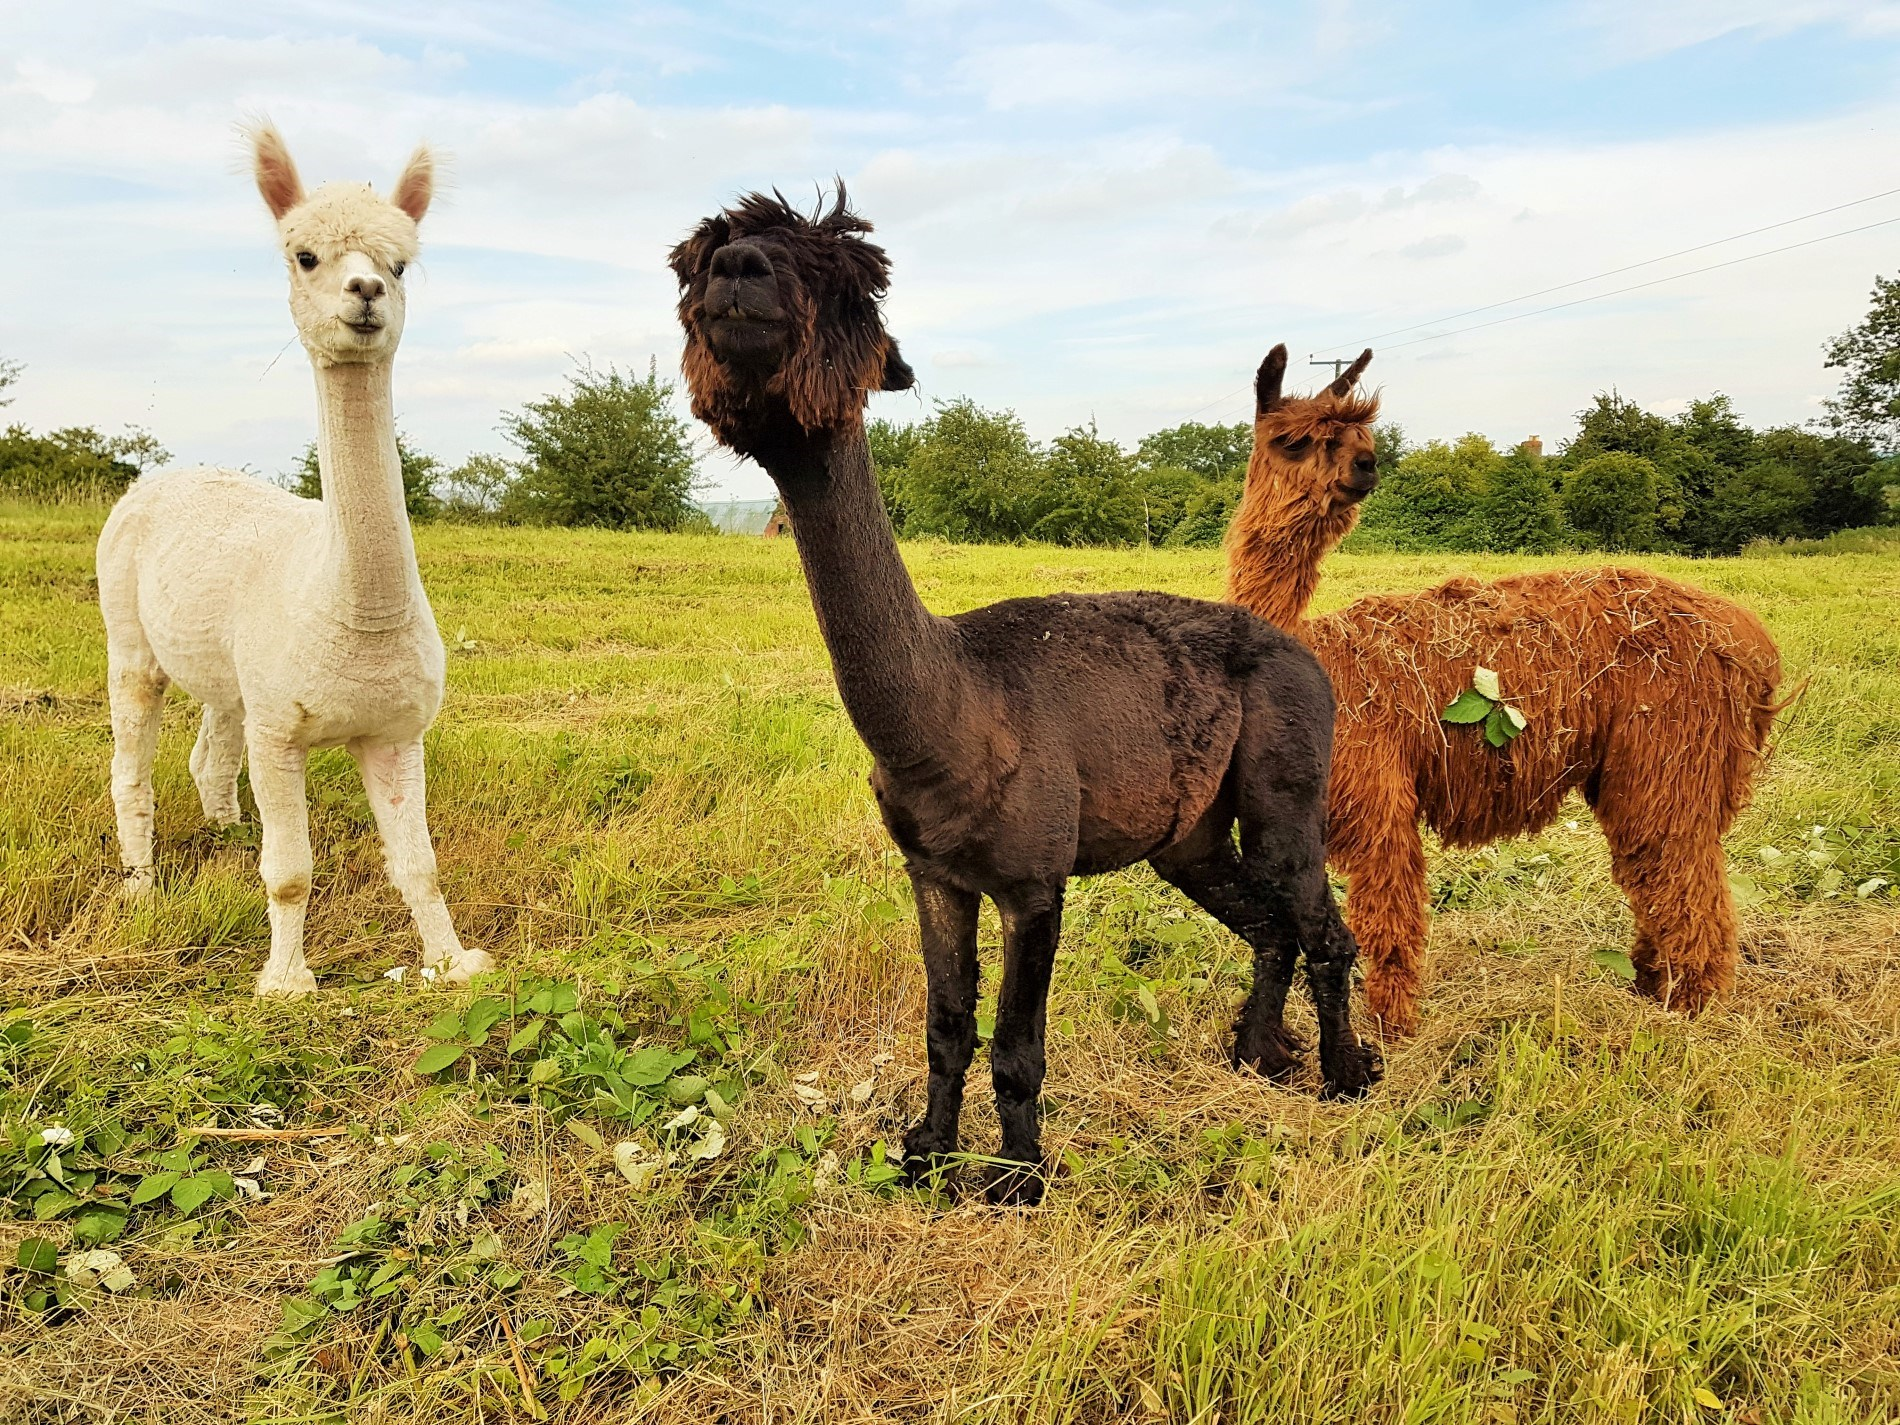 Meet the local residents with walks available by arrangement